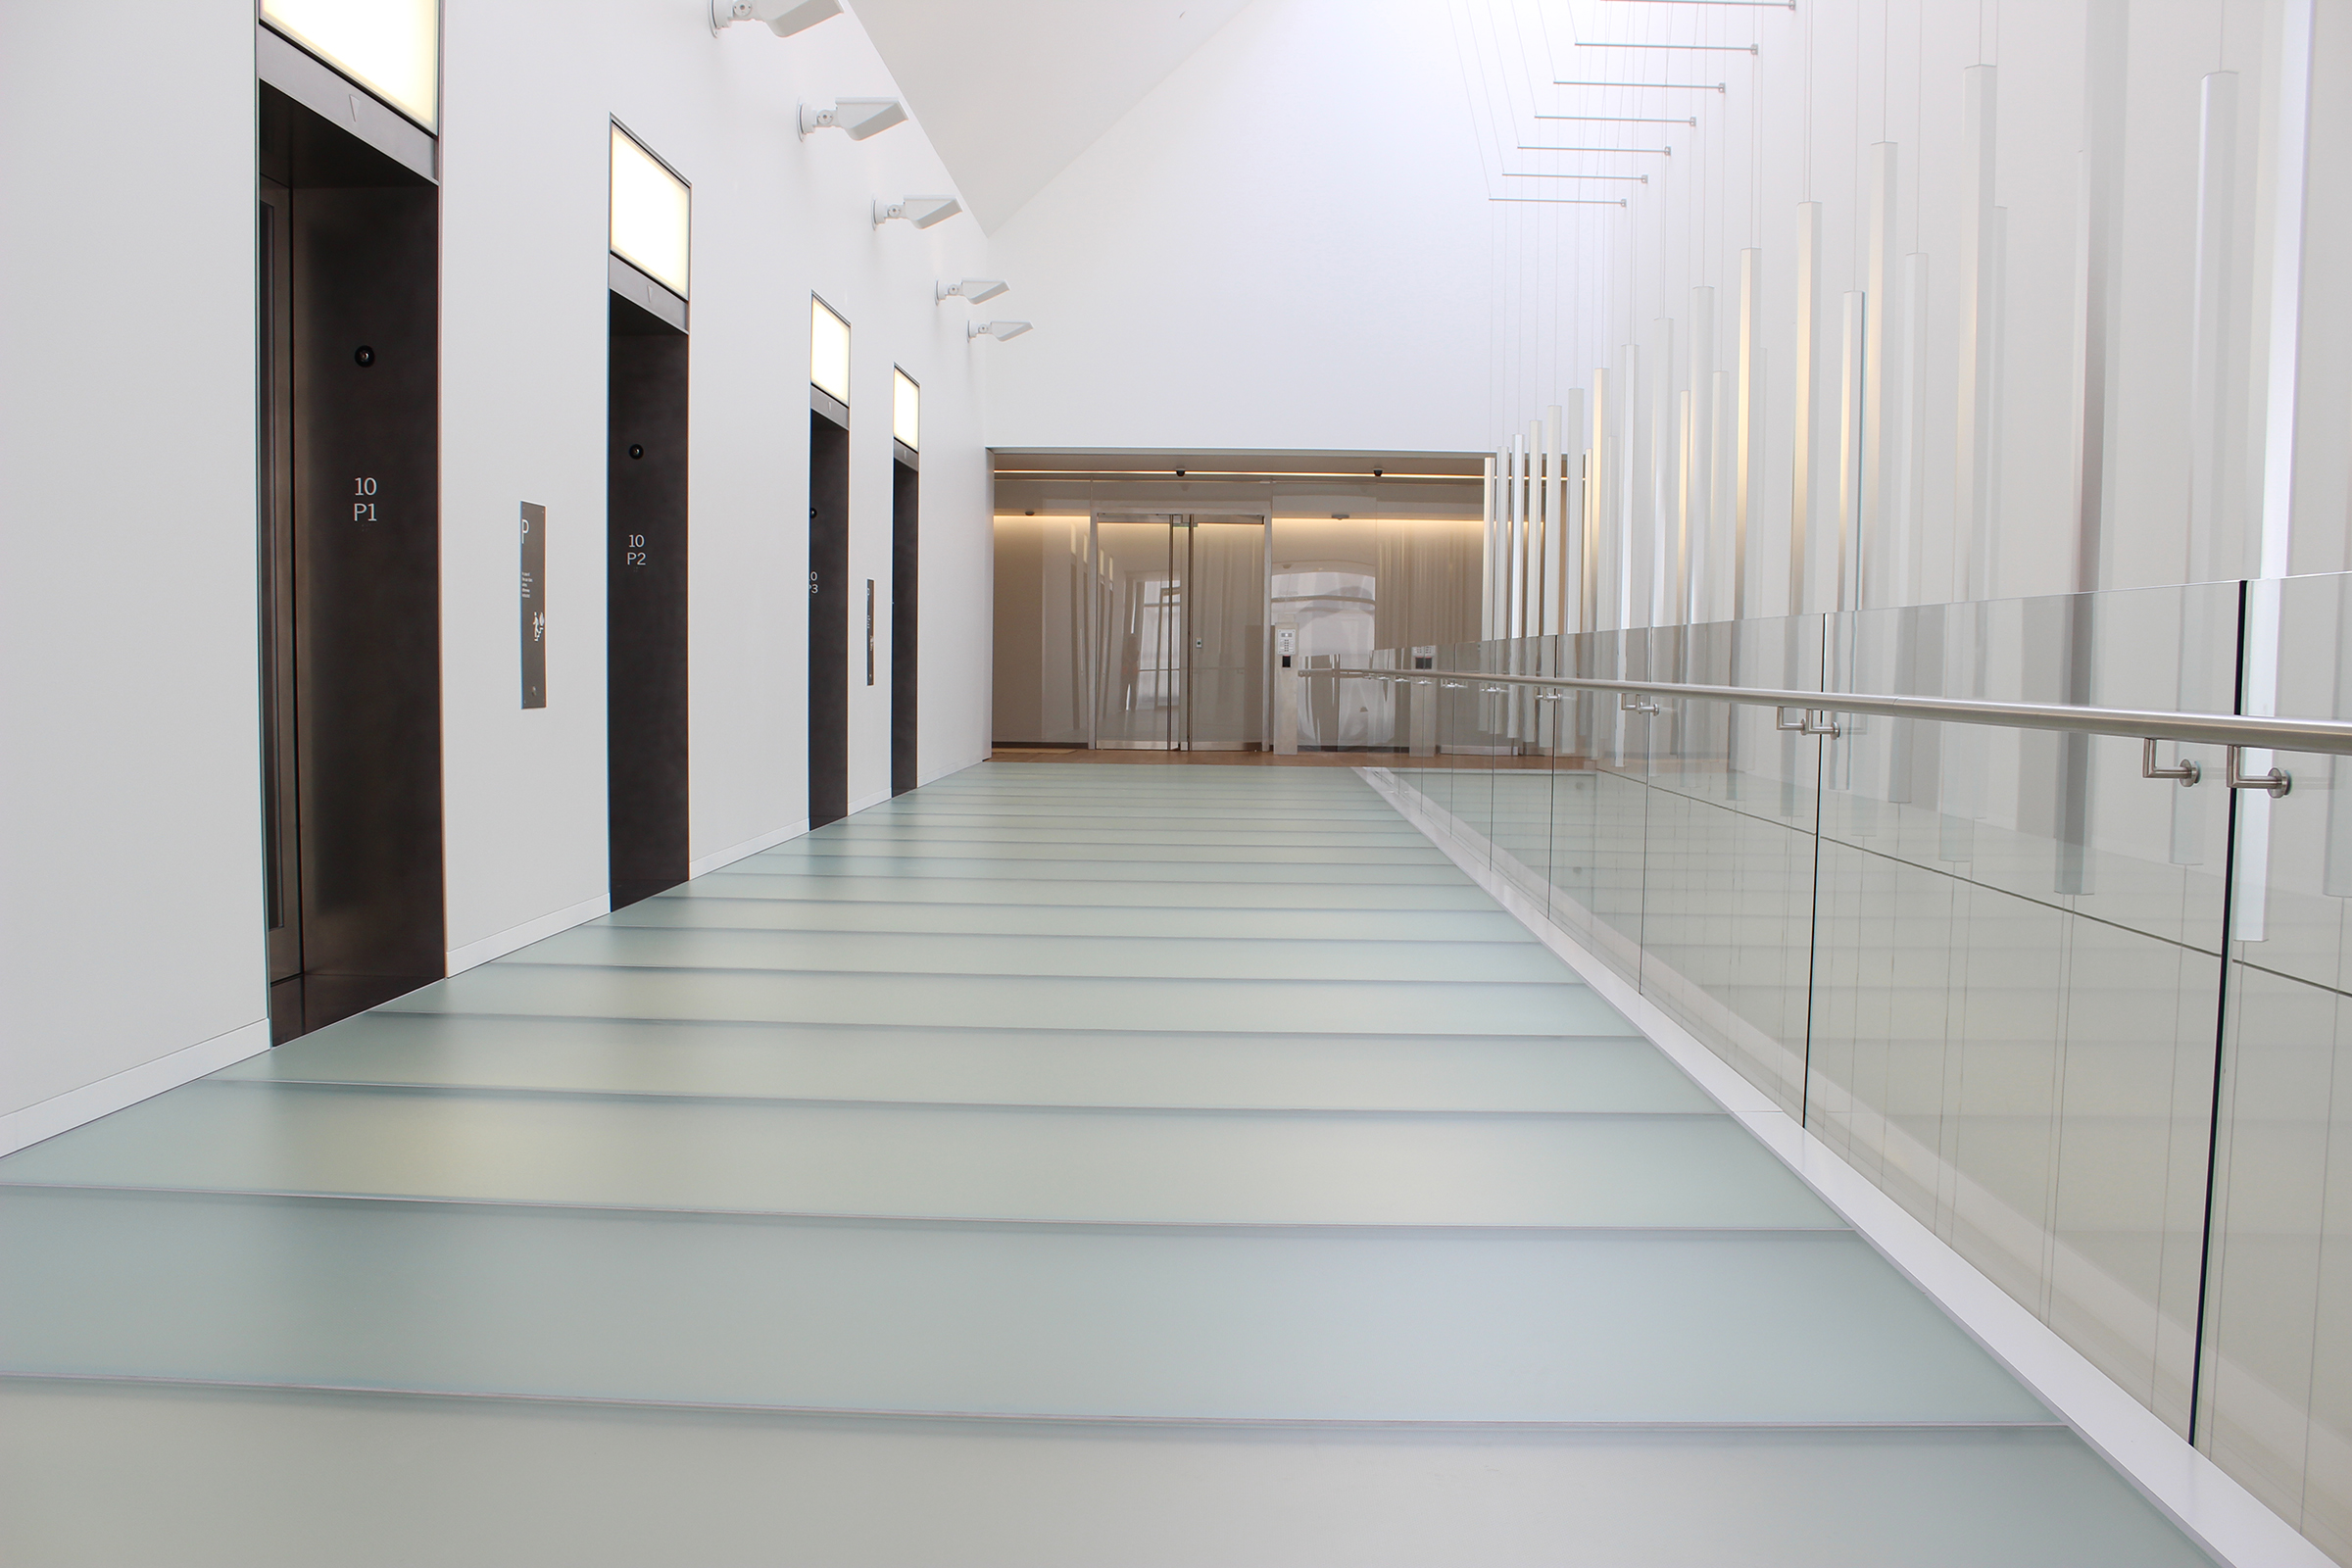 laminated glass floor system glass flooring/staircase systems XAYTLHV